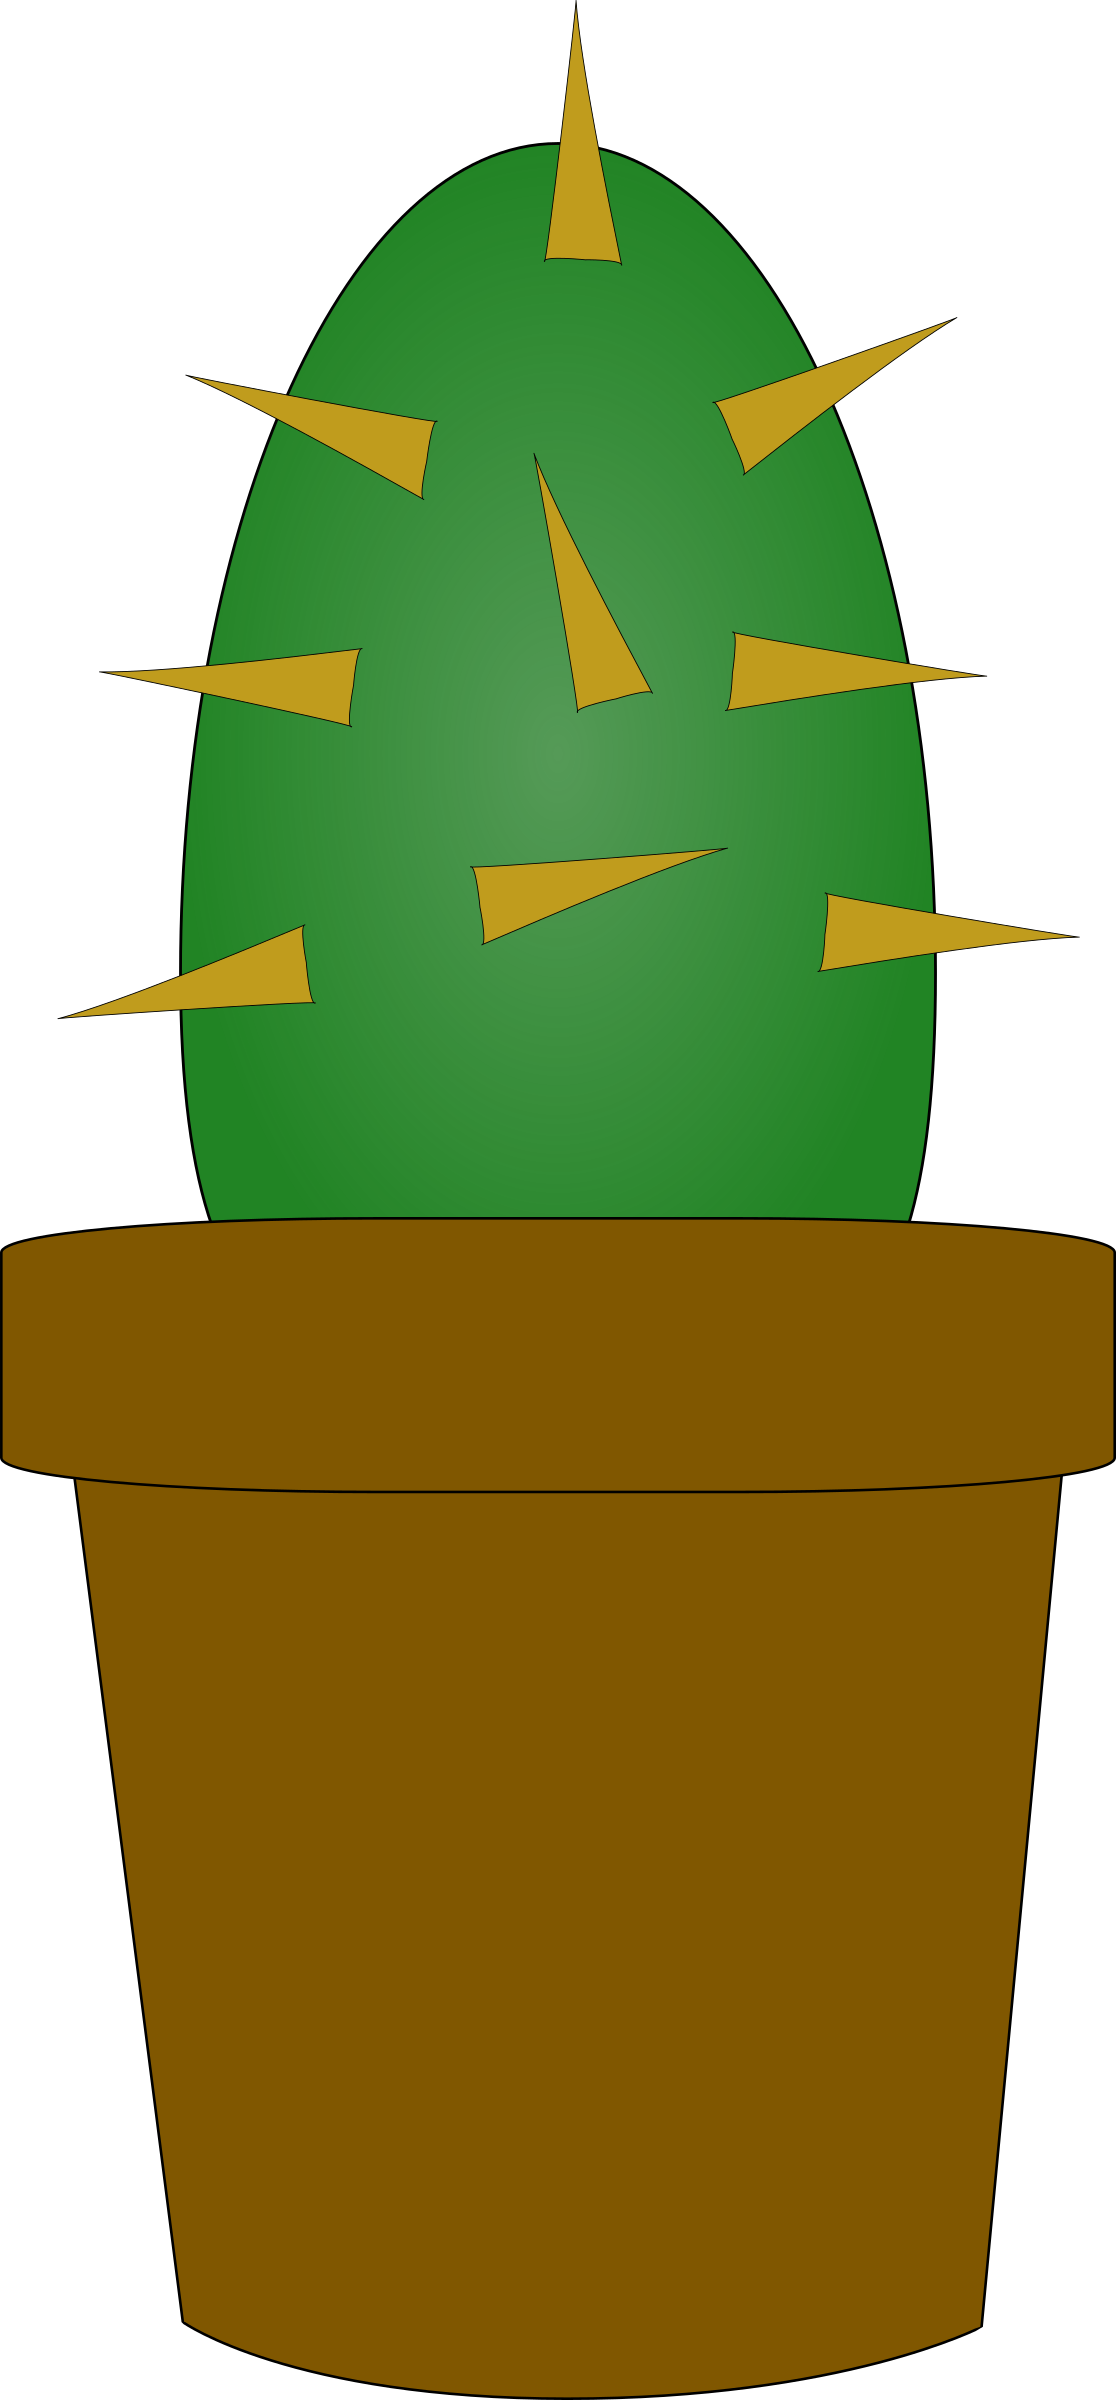 cactus1 by Machovka